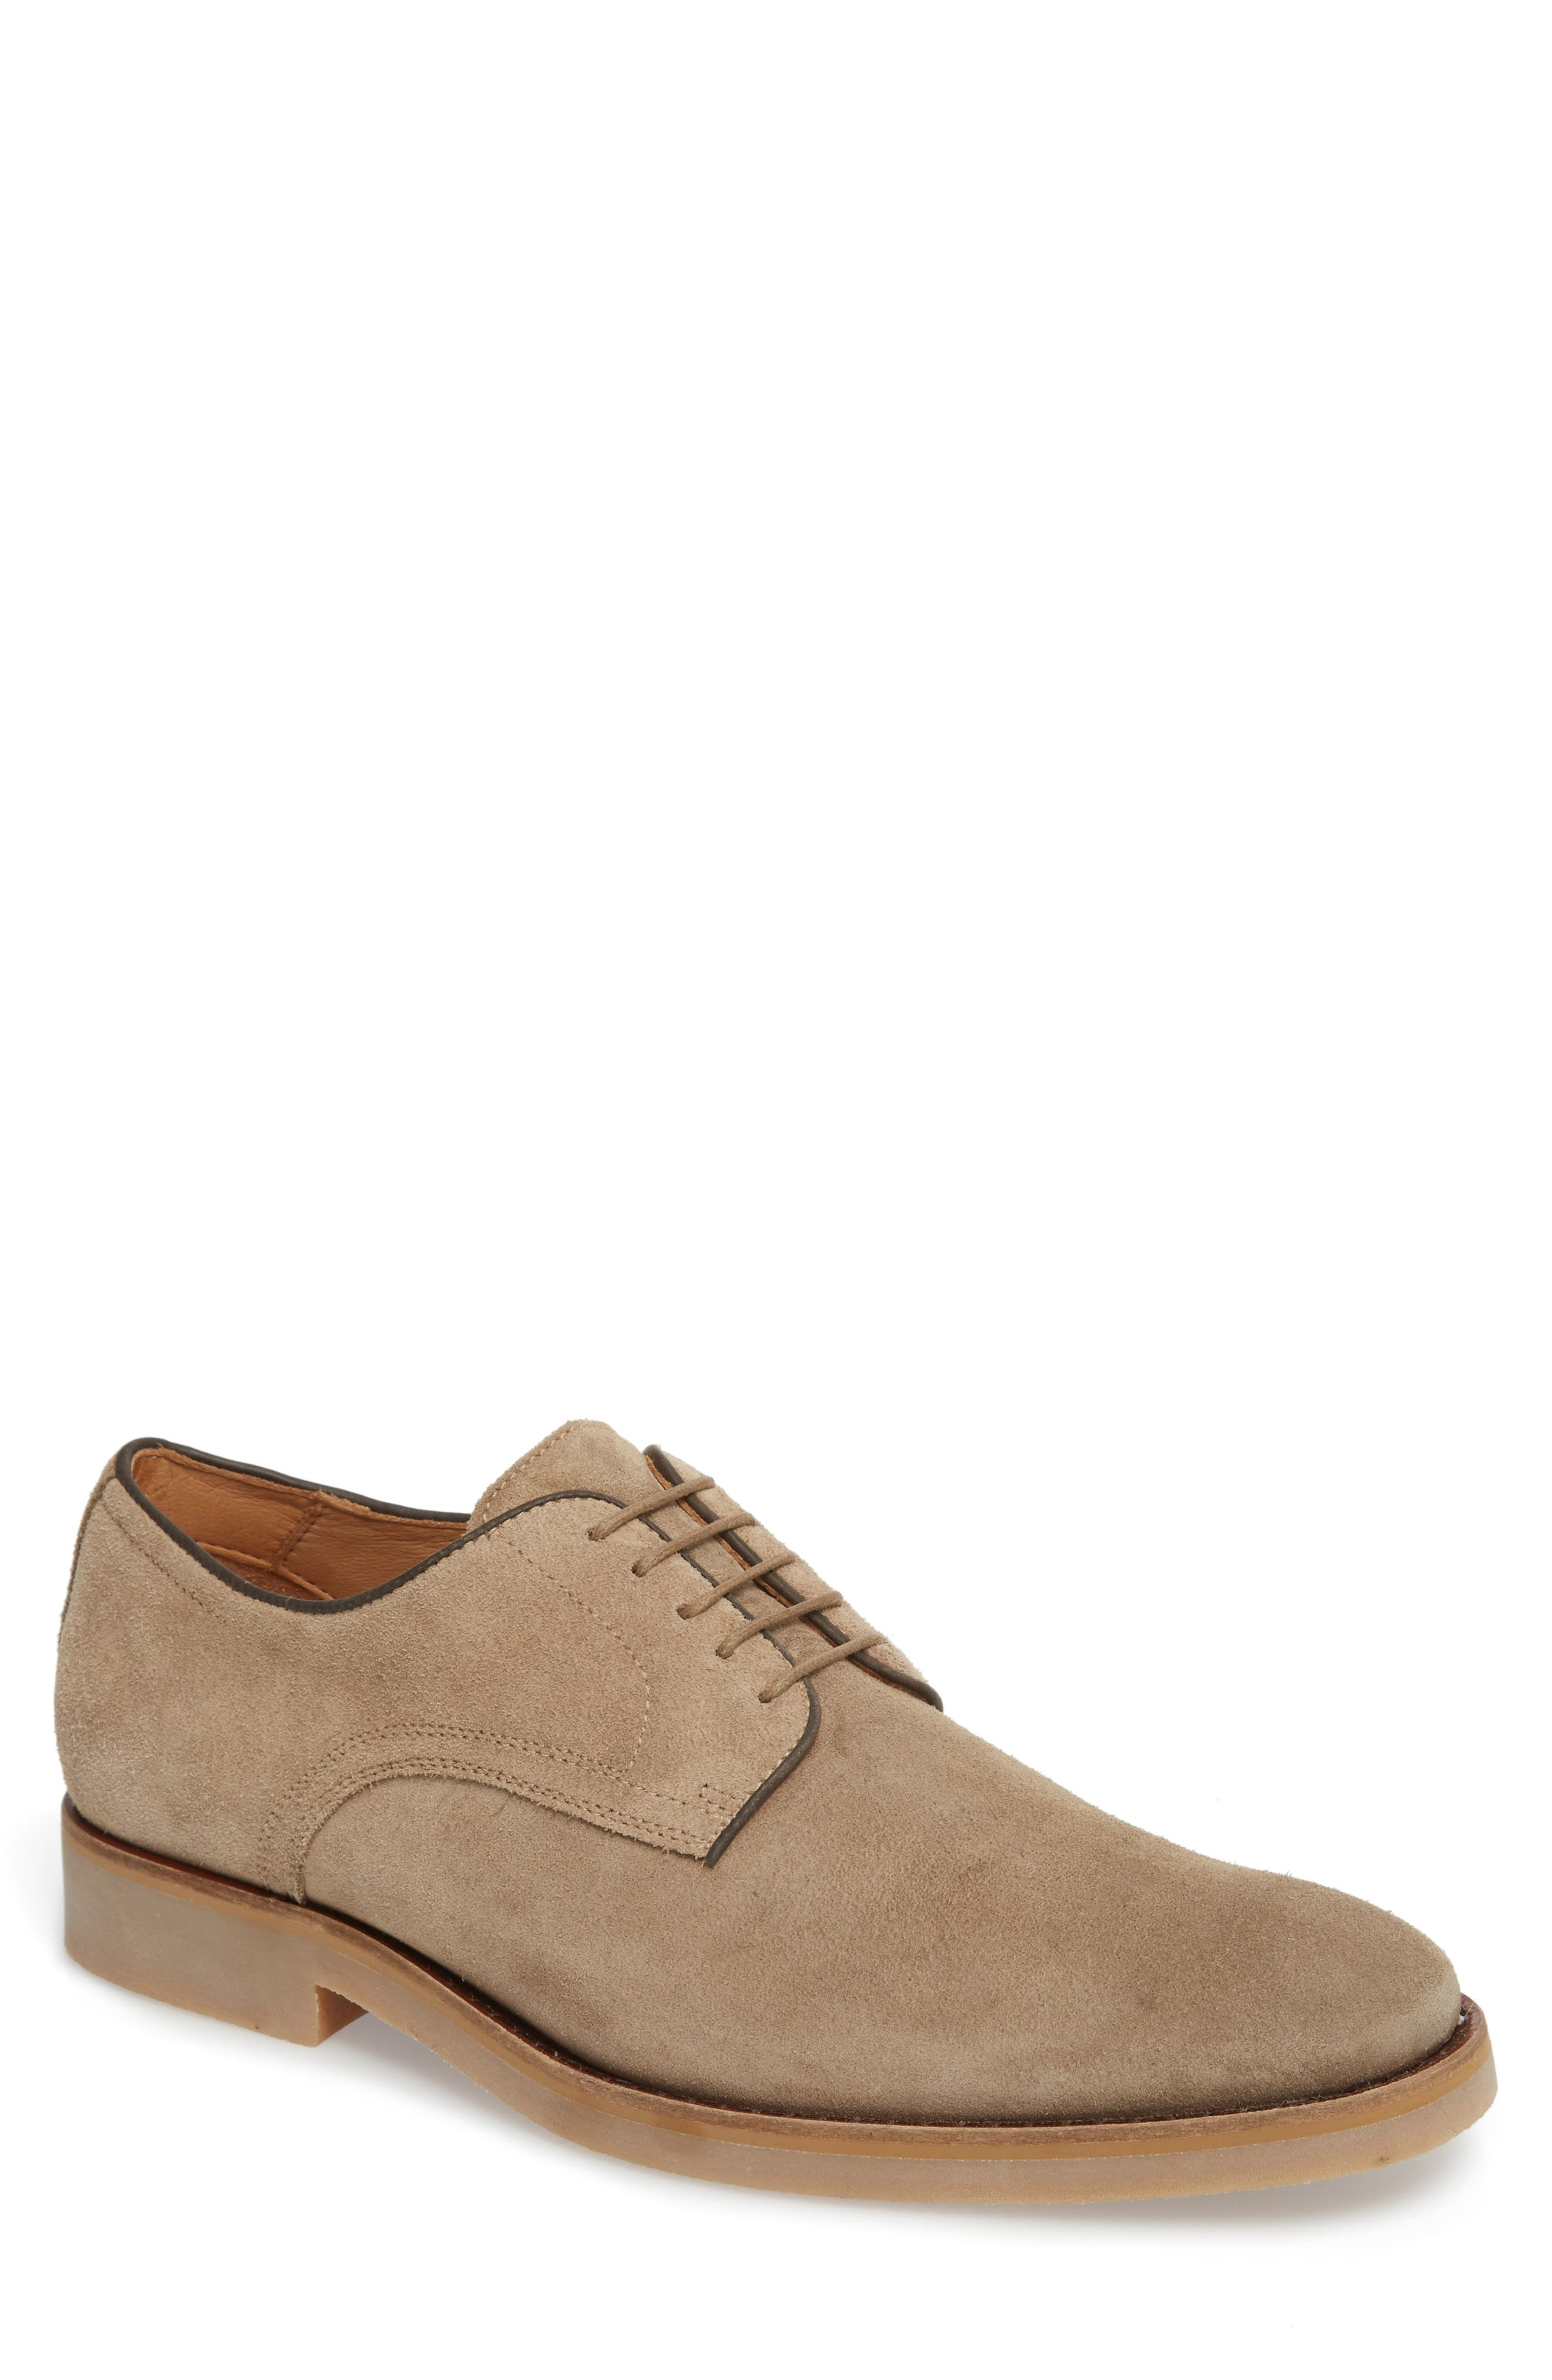 Santino Plain Toe Derby,                         Main,                         color, Taupe Suede